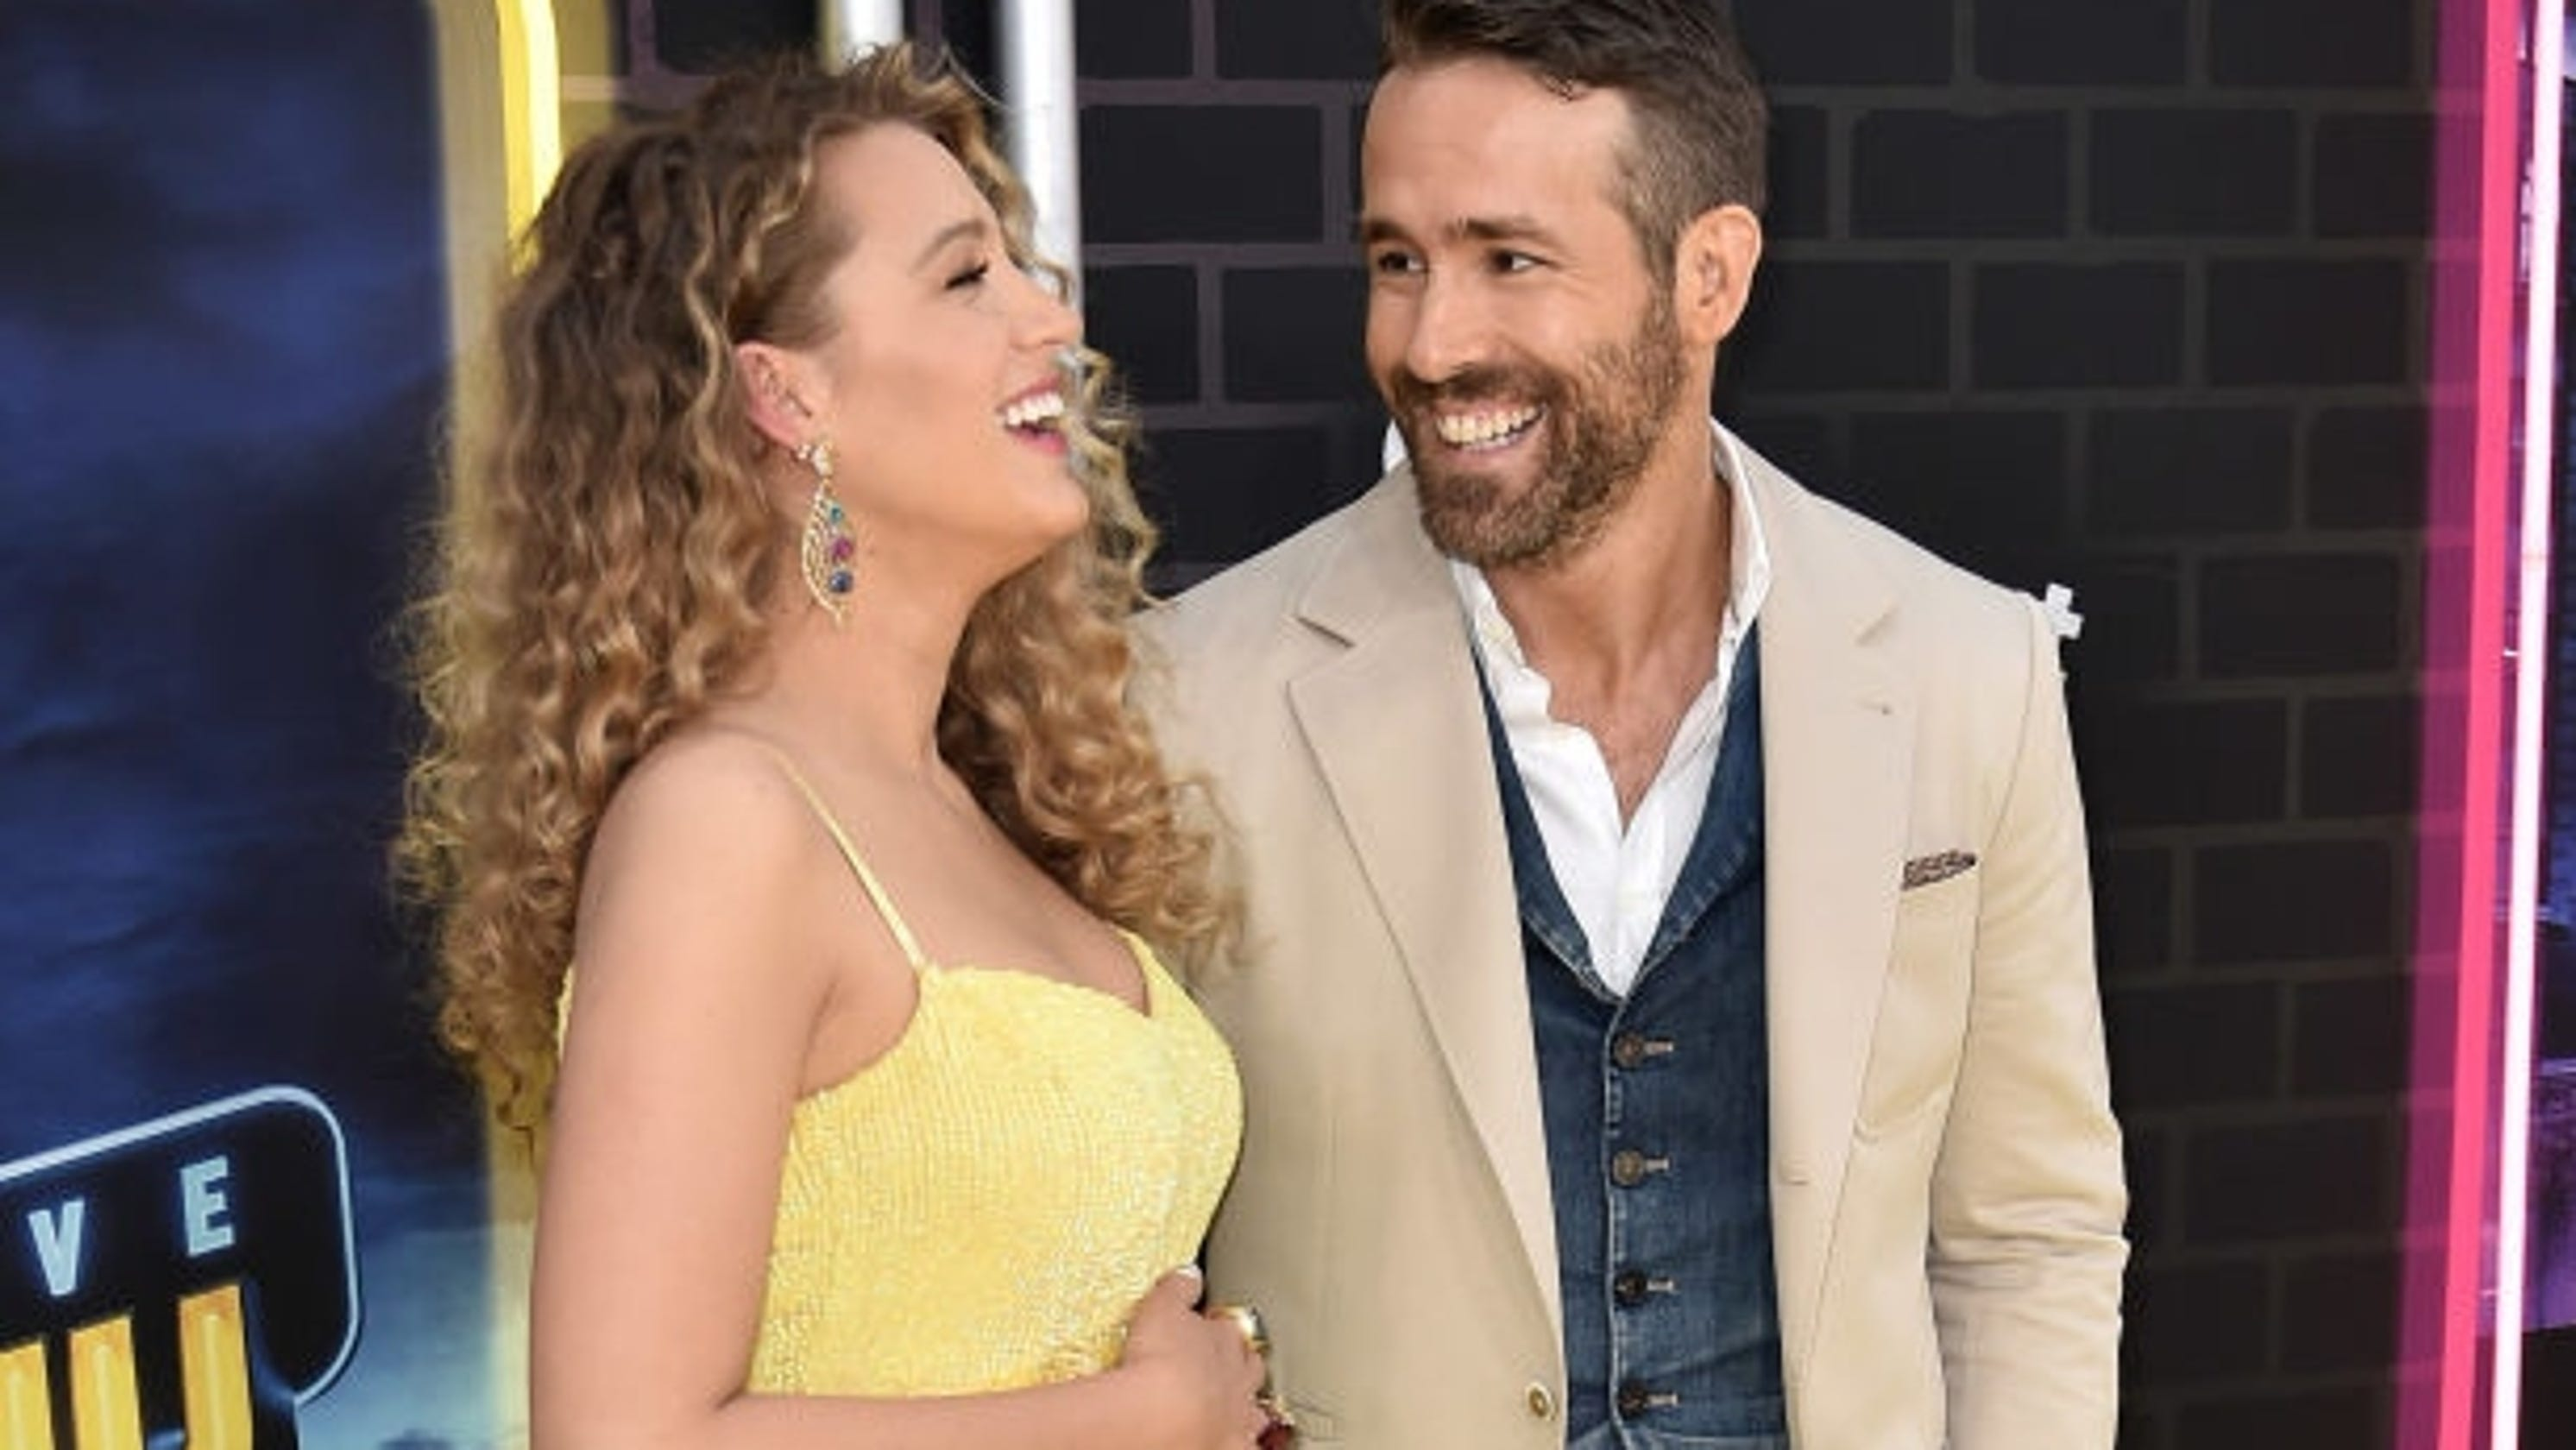 Ryan Reynolds trolls pregnant wife Blake Lively on her birthday with unflattering photos